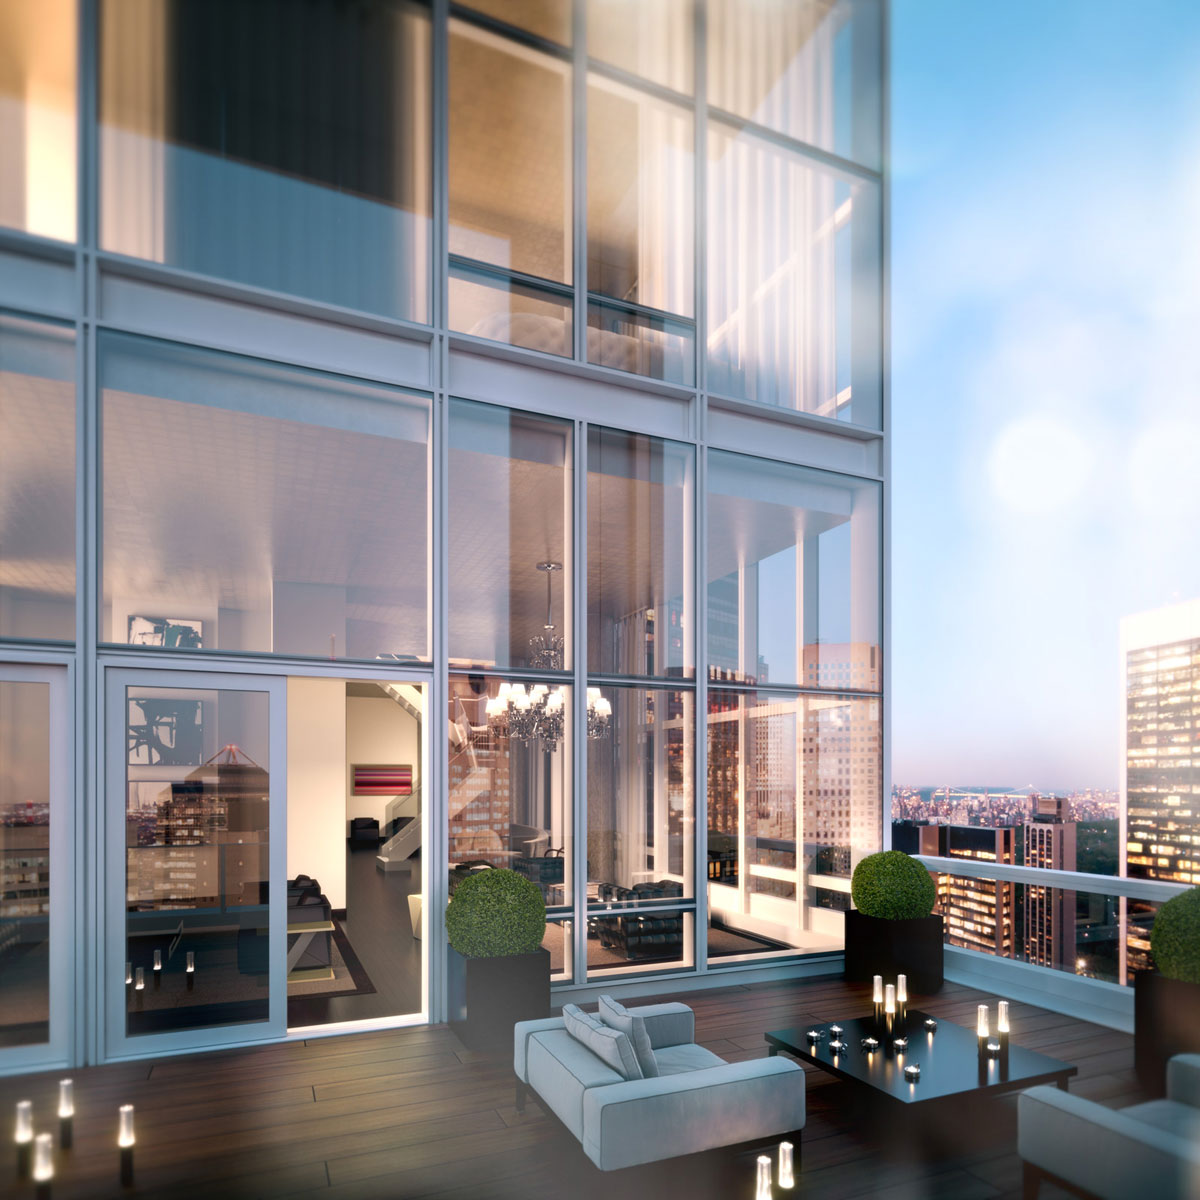 50 story baccarat hotel residences new york to open in for Hotel new york